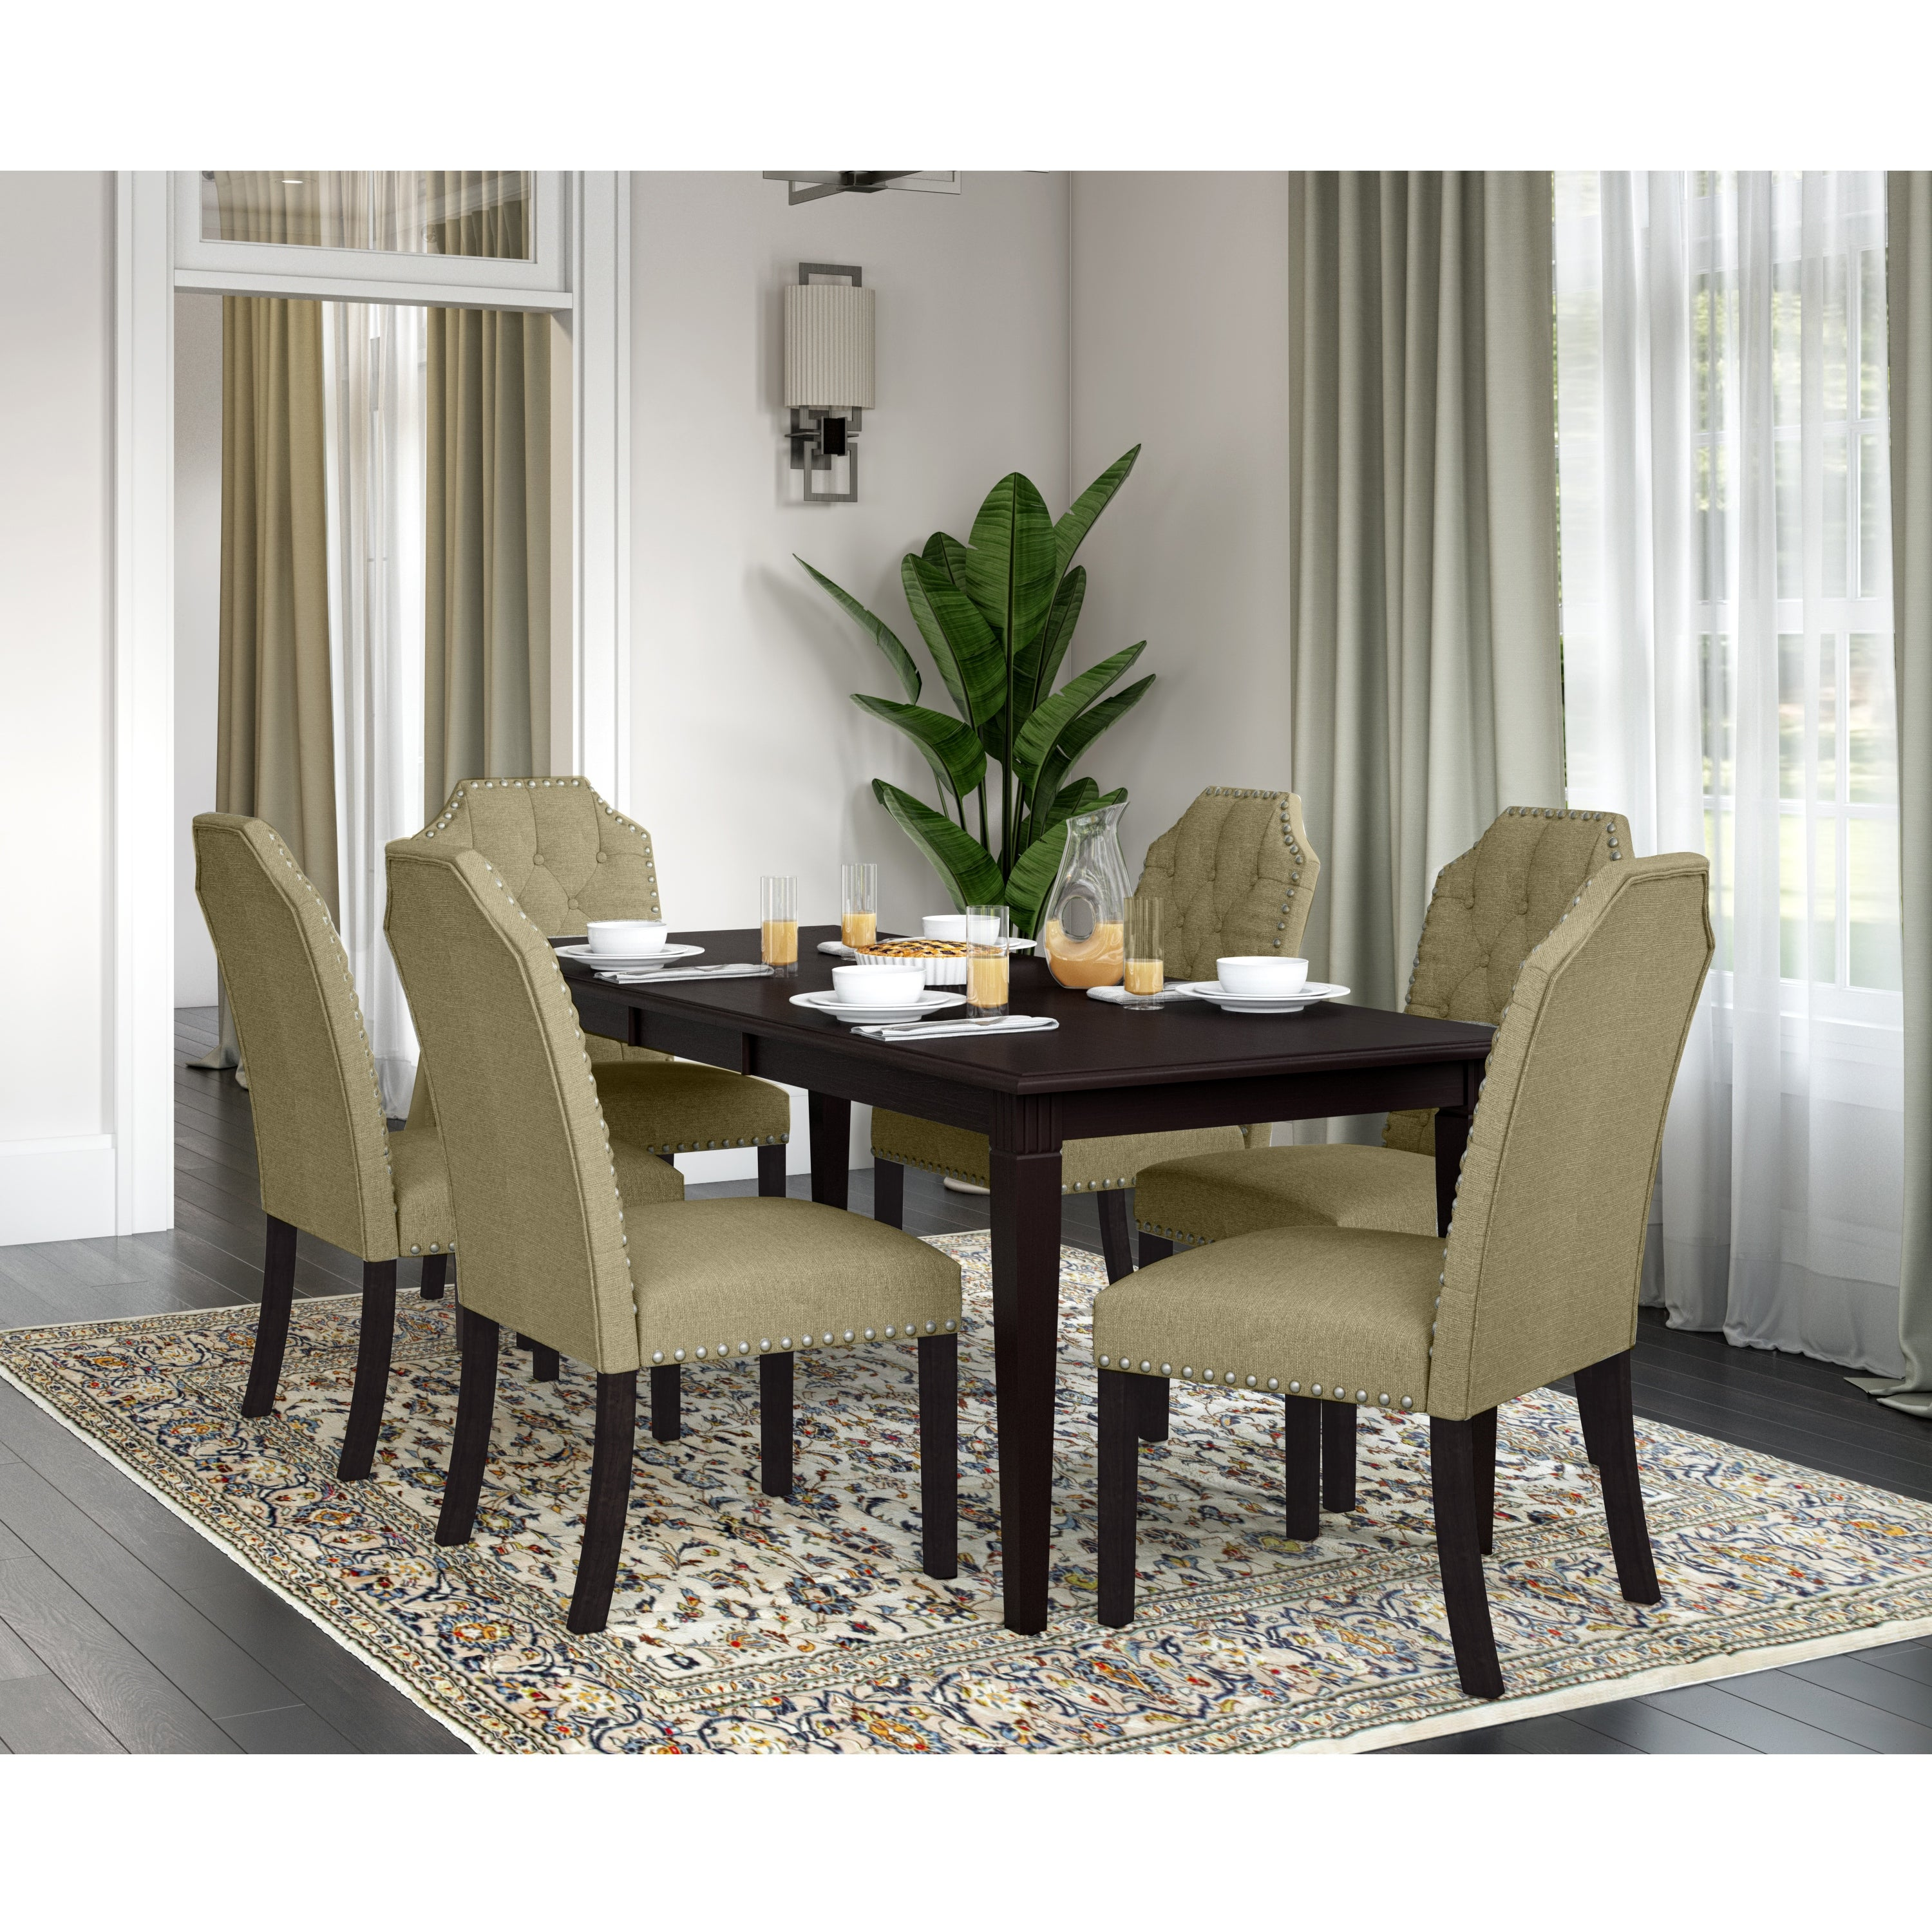 Picture of: Copper Grove Teresa 7 Piece Wood Dining Table And Upholstered Dining Chairs Overstock 31934519 Barley Tan Linen